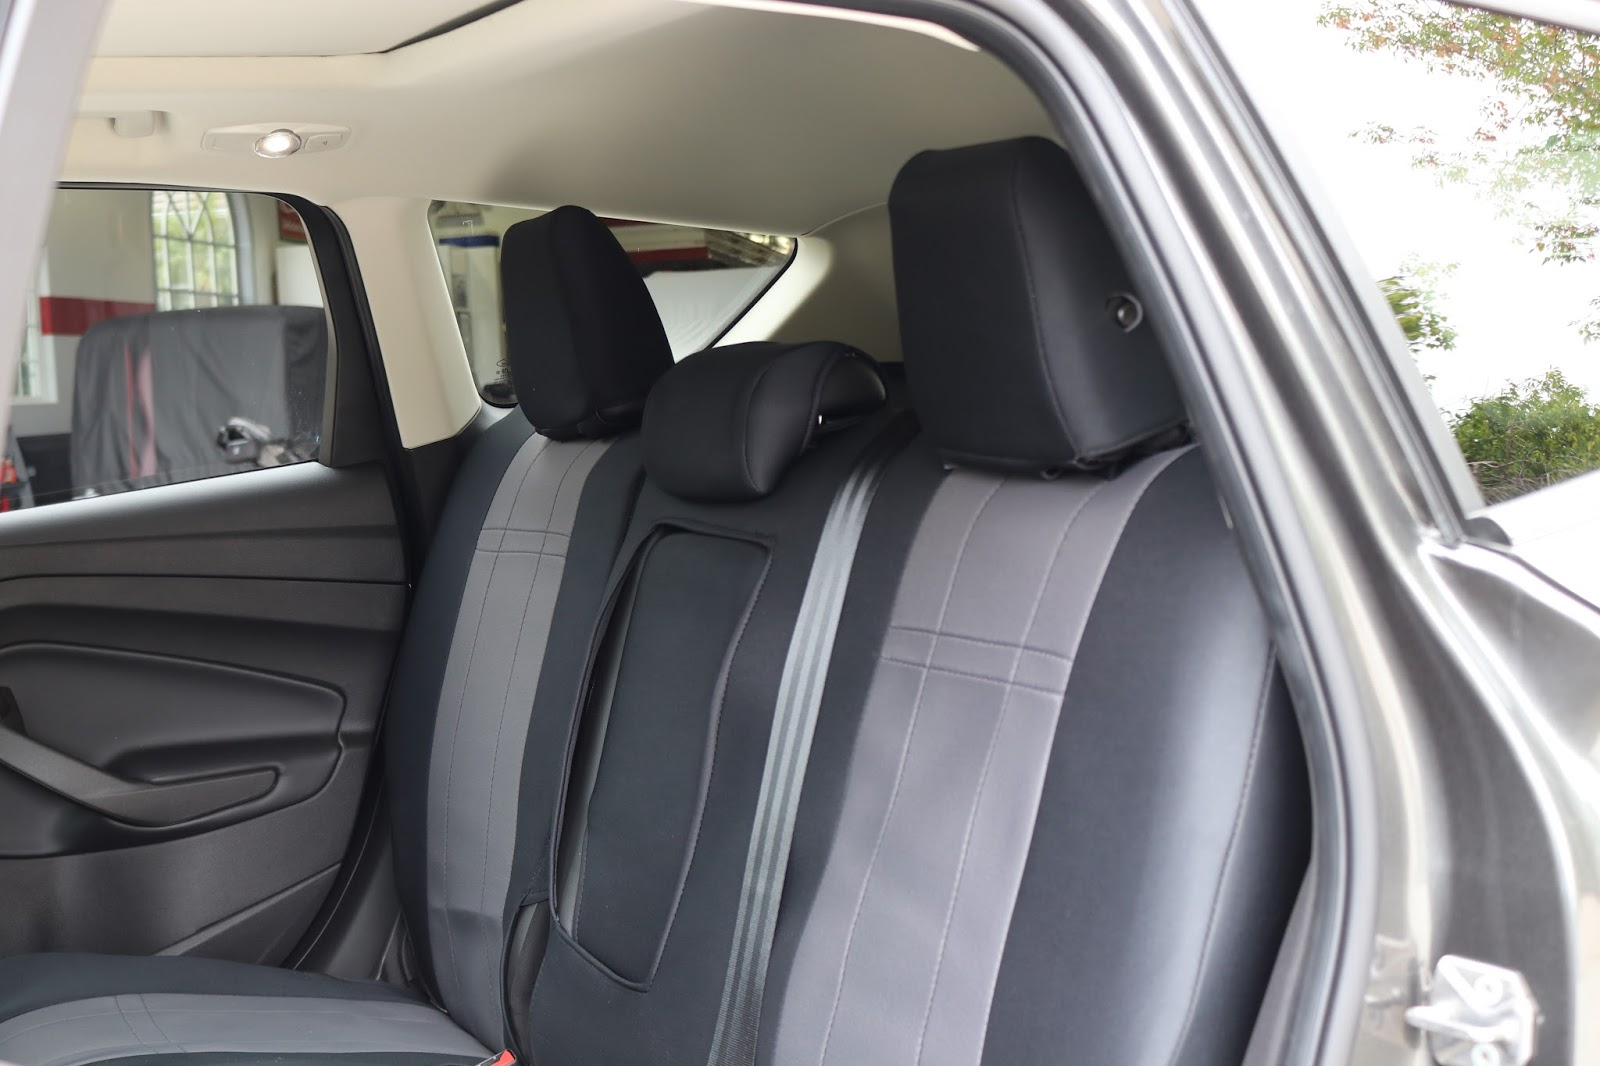 Now that we have the floor surfaces protected the next step is to protect the seating surfaces in the ford escape the rear bench seat needed some